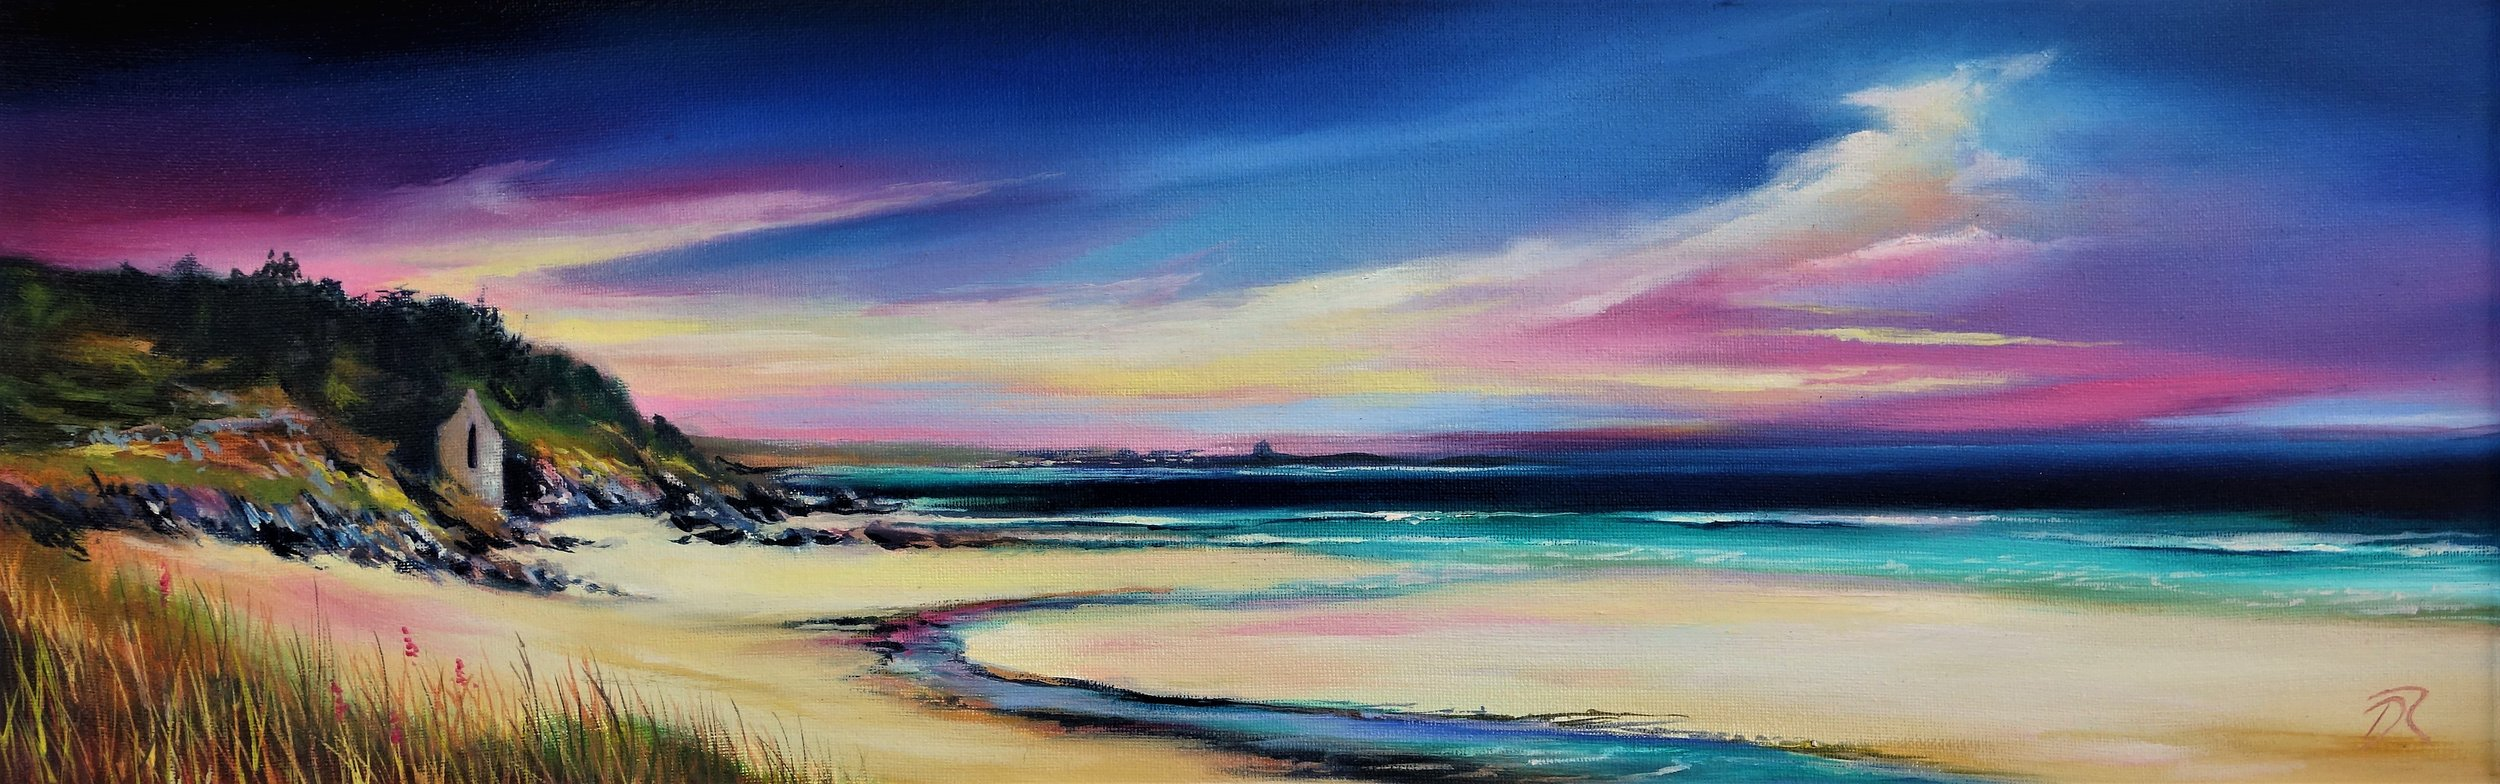 2017 The Colours of Kilnaughton  | Framed | Oil on Canvas | 19 x 59 cm |  SOLD |  Prints   Availible